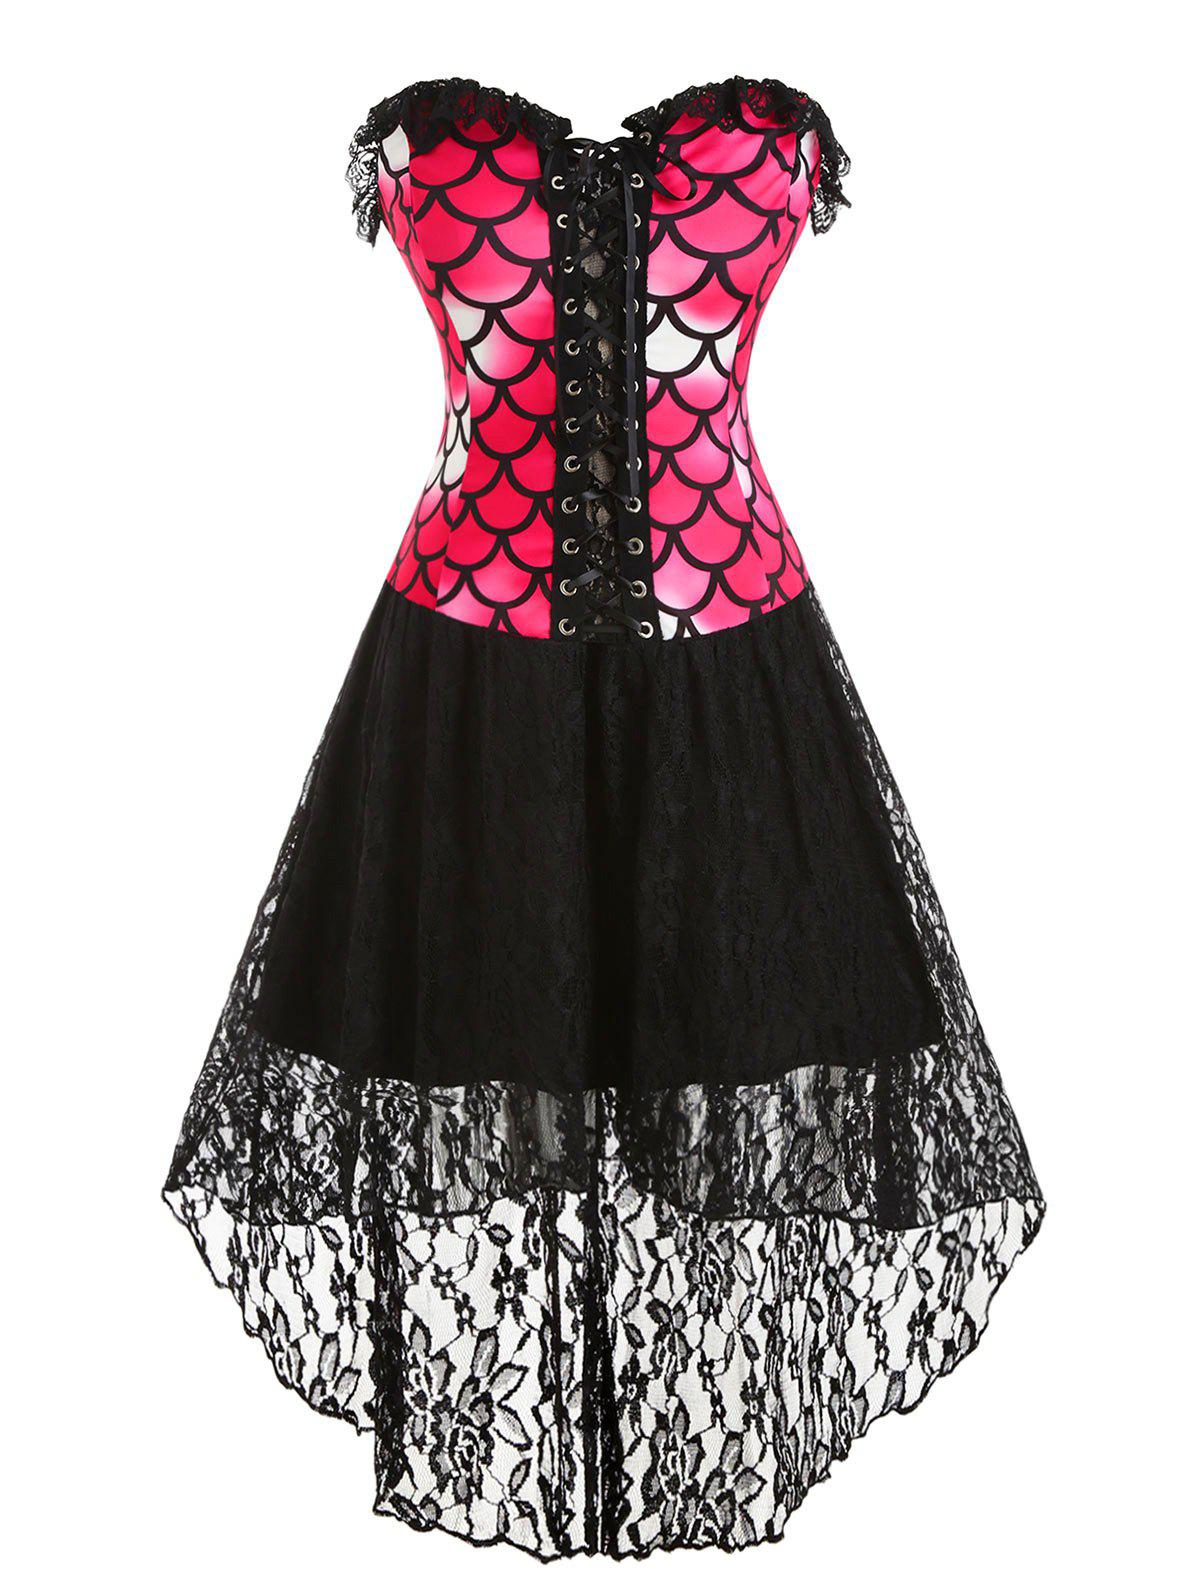 Lace Up Lace Panel High Low Mermaid Scales Print Plus Size Corset Dress, Black